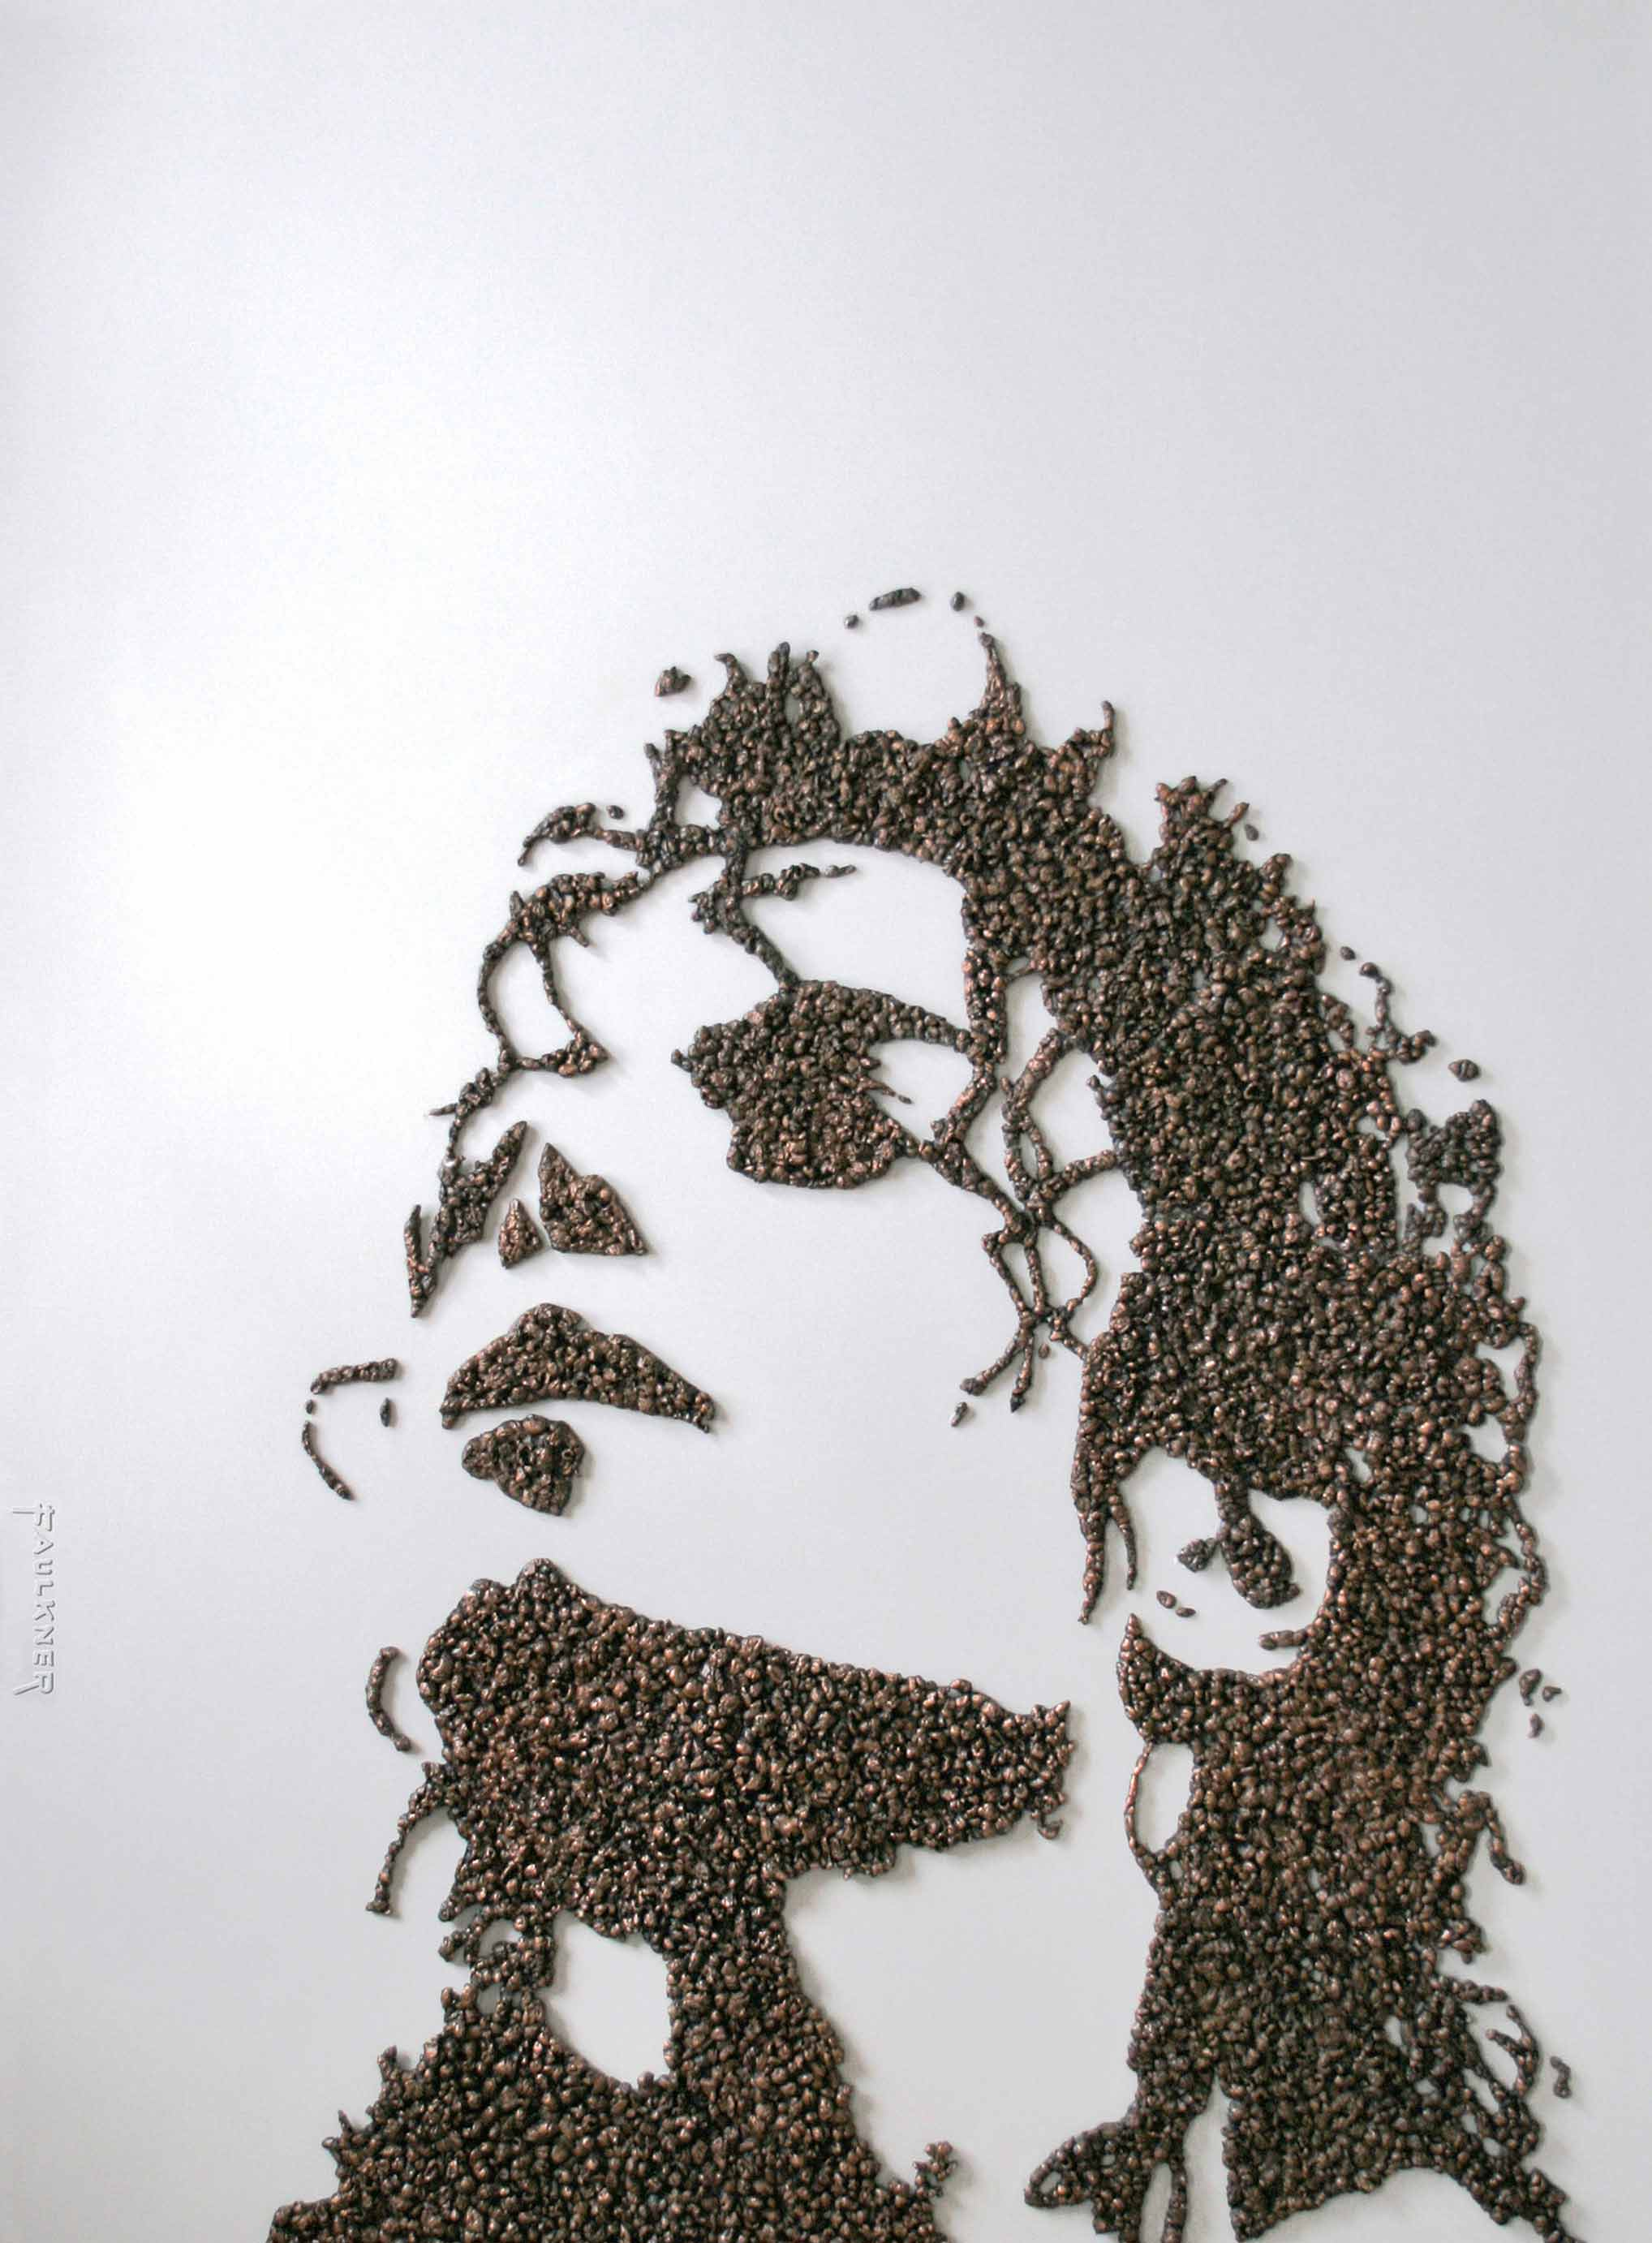 Michael Jackson Pop Corn sculpture